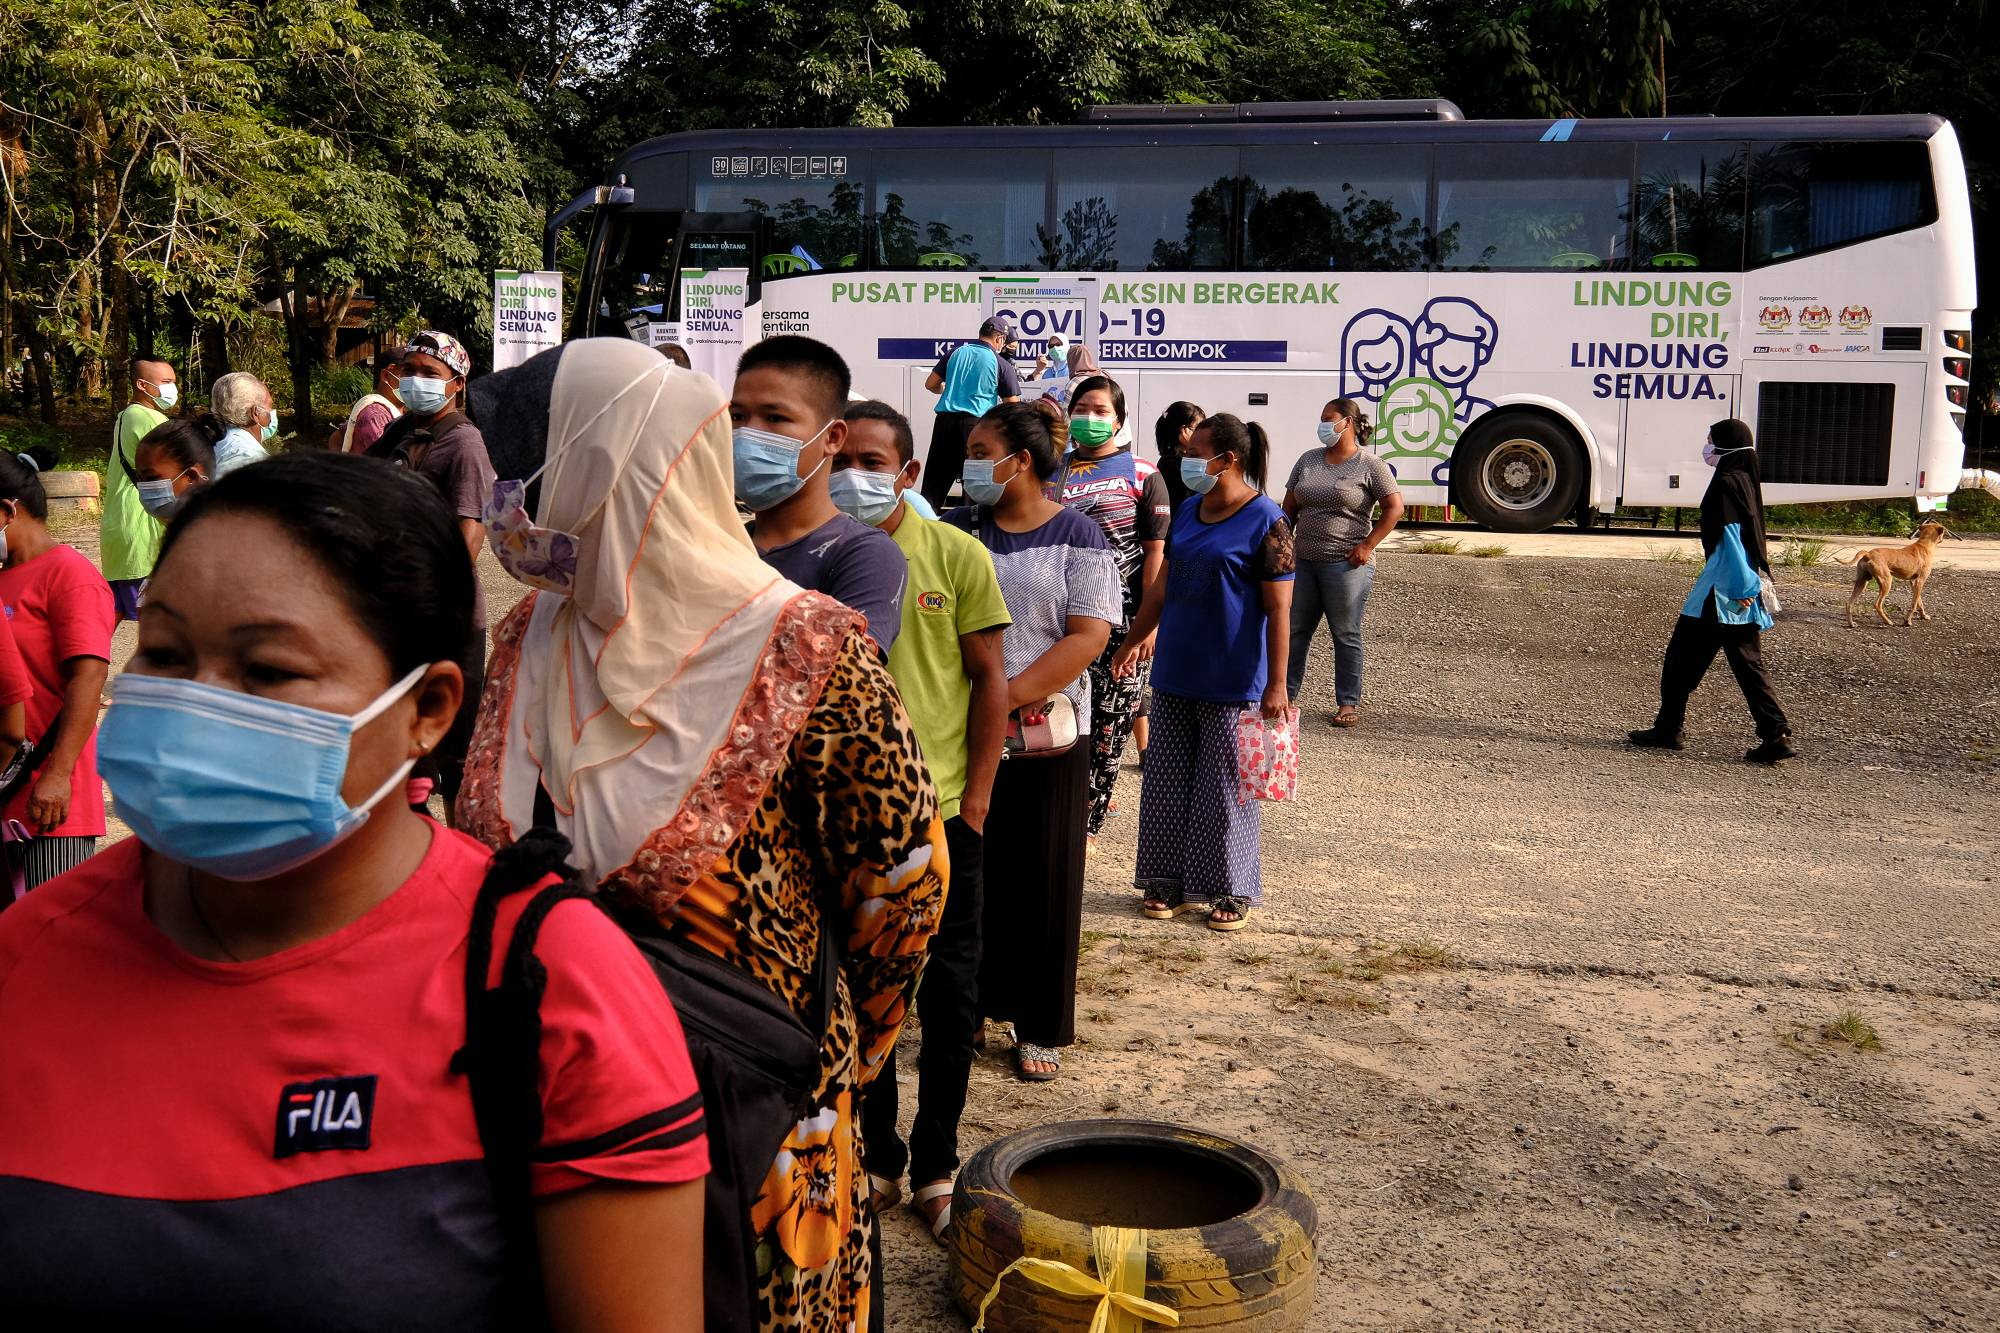 Residents wait in line to register for the Pfizer-BioNTech COVID-19 vaccine at a mobile vaccination clinic set up in Kuala Langat, Malaysia, on Thursday. | BLOOMBERG